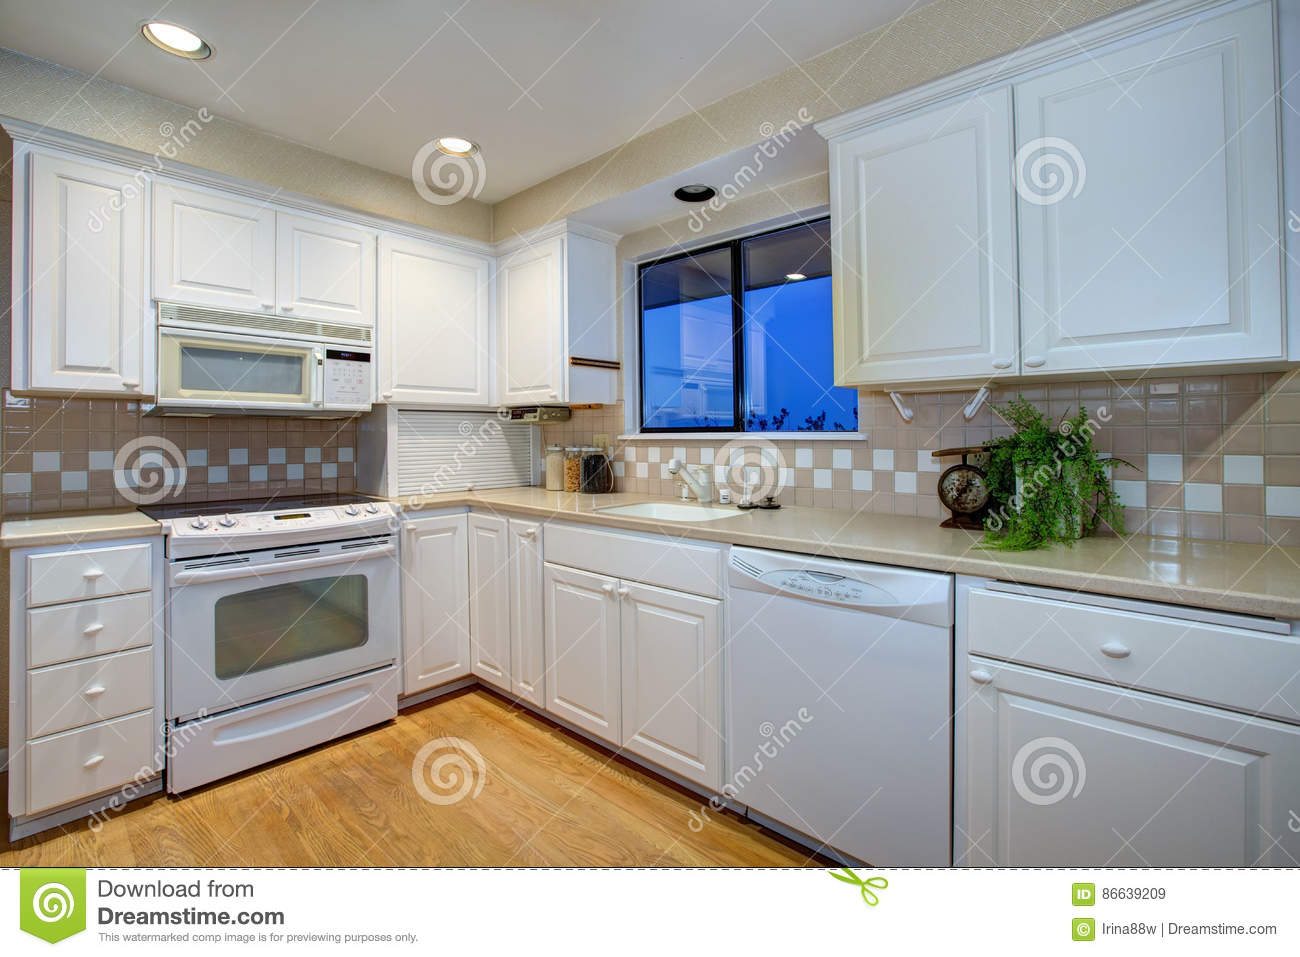 - White Kitchen Design With Hardwood Floor And White Appliances